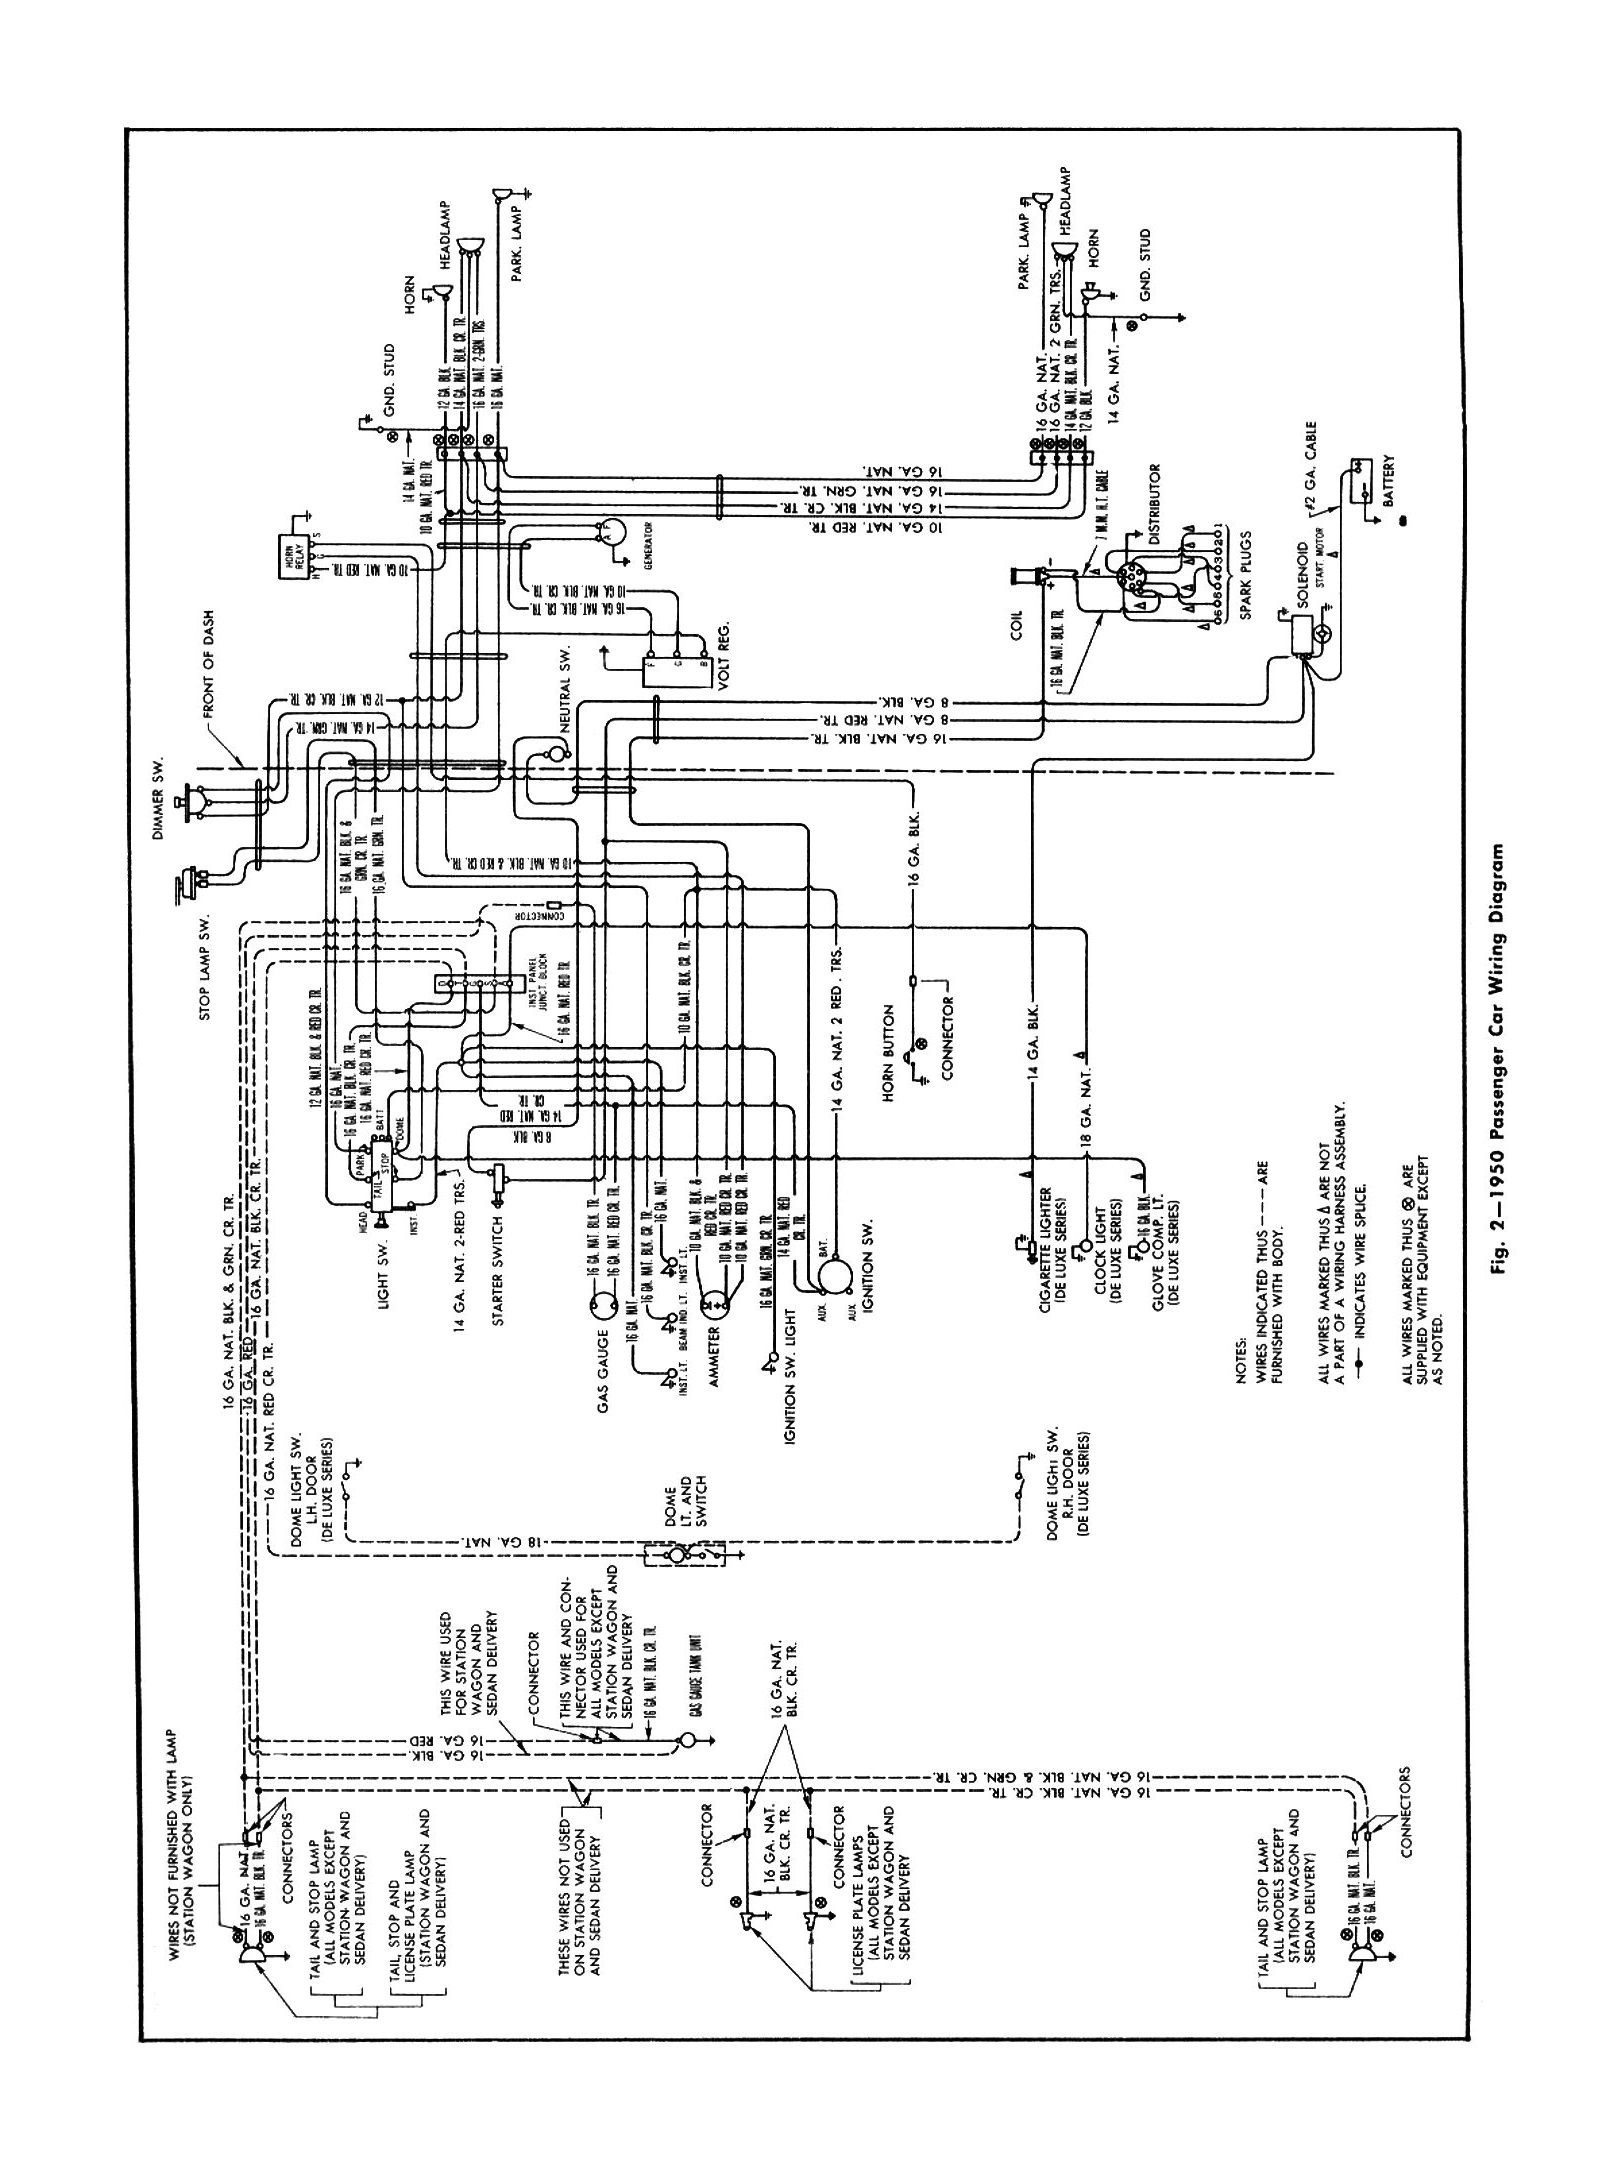 General Wiring Diagram For The Gmc Trucks Series